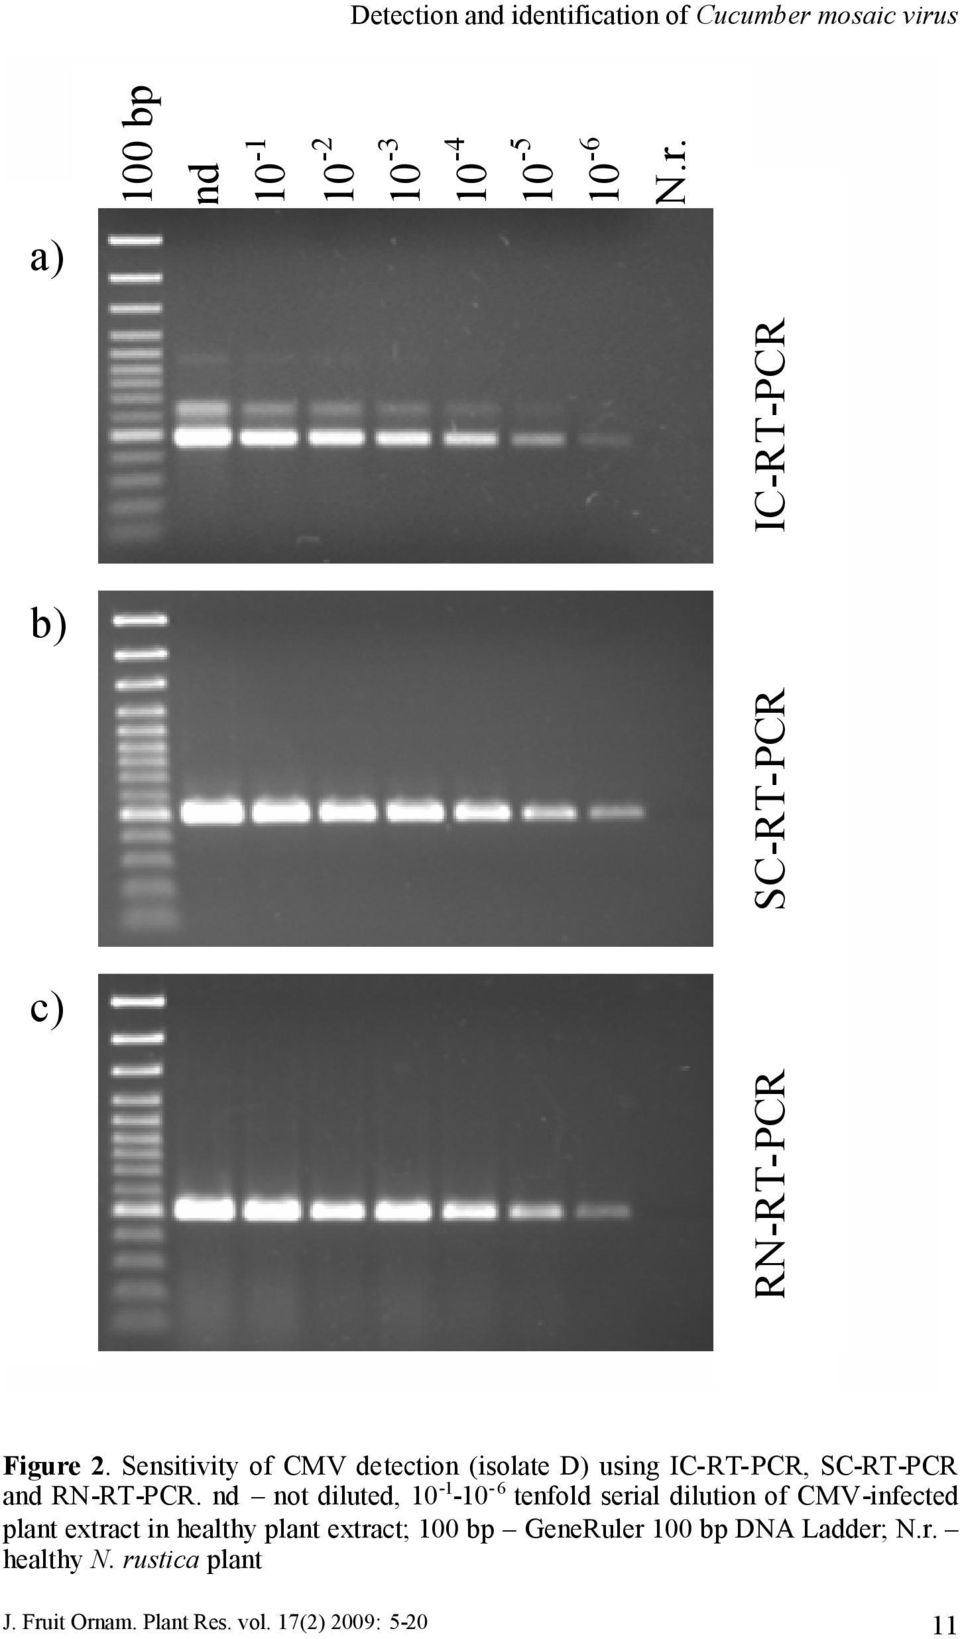 Sensitivity of CMV detection (isolate D) using IC-RT-PCR, SC-RT-PCR and RN-RT-PCR.